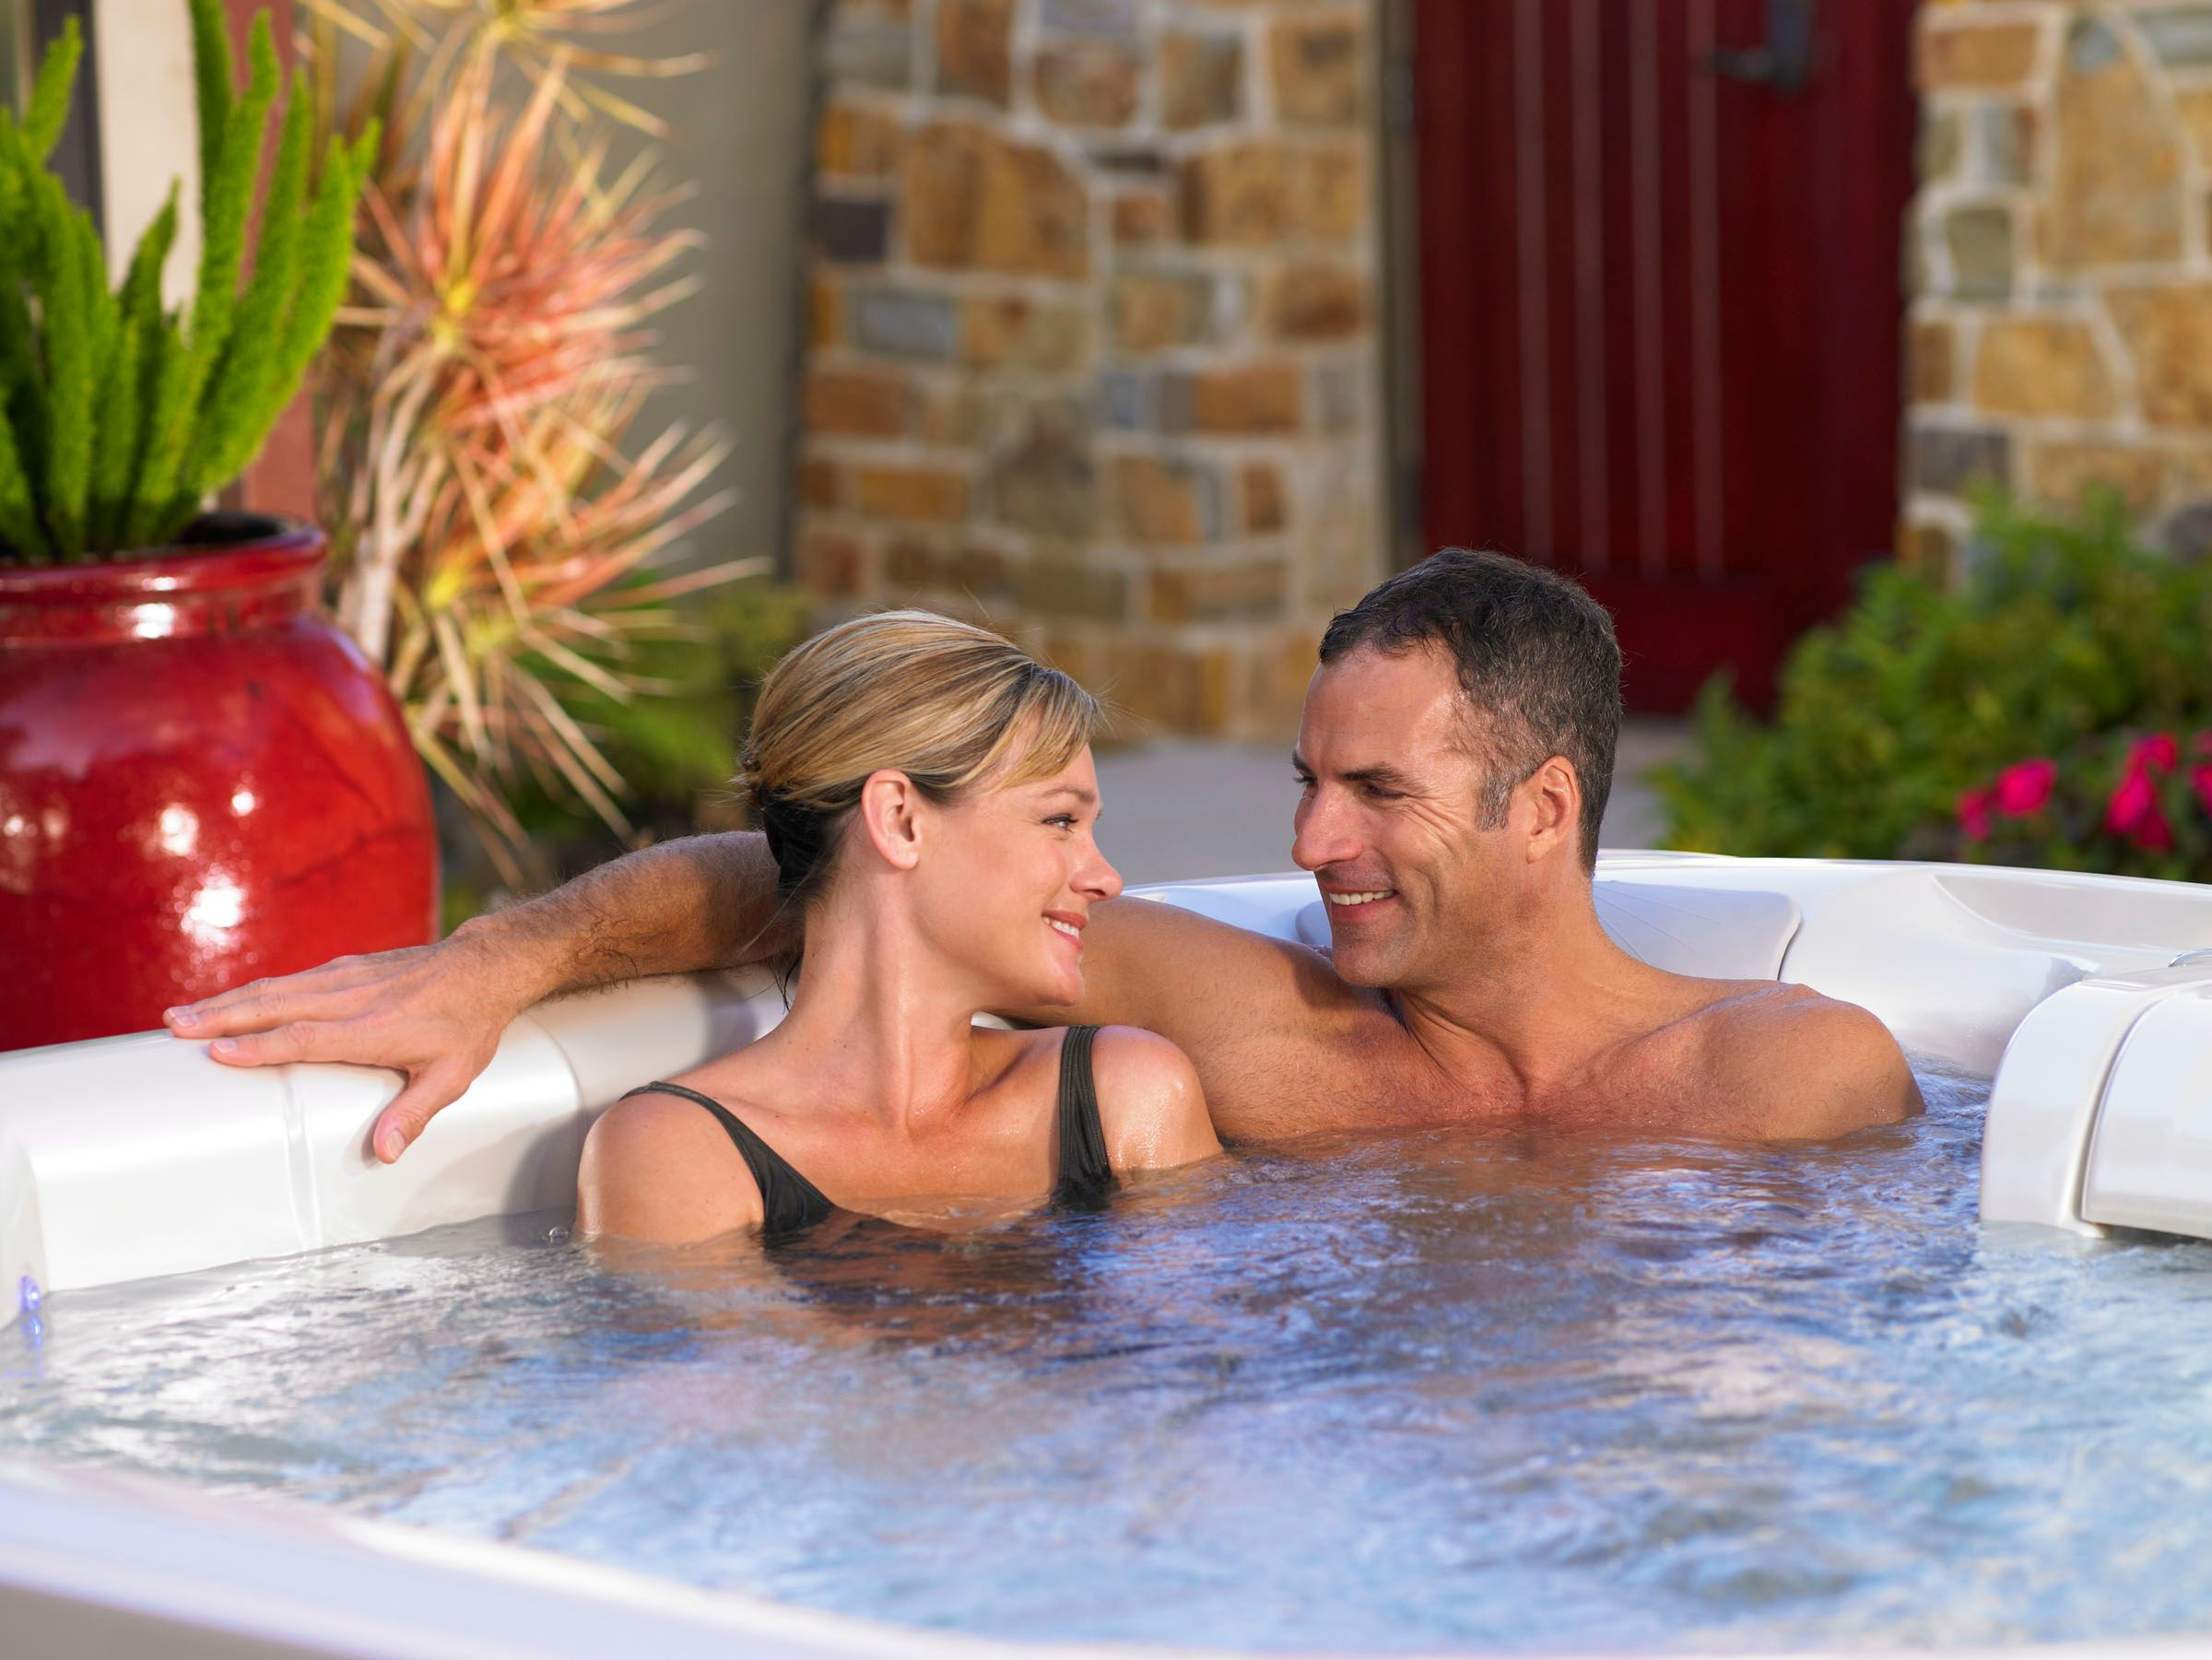 Spice Up Date Night with a Hot Tub this Fall